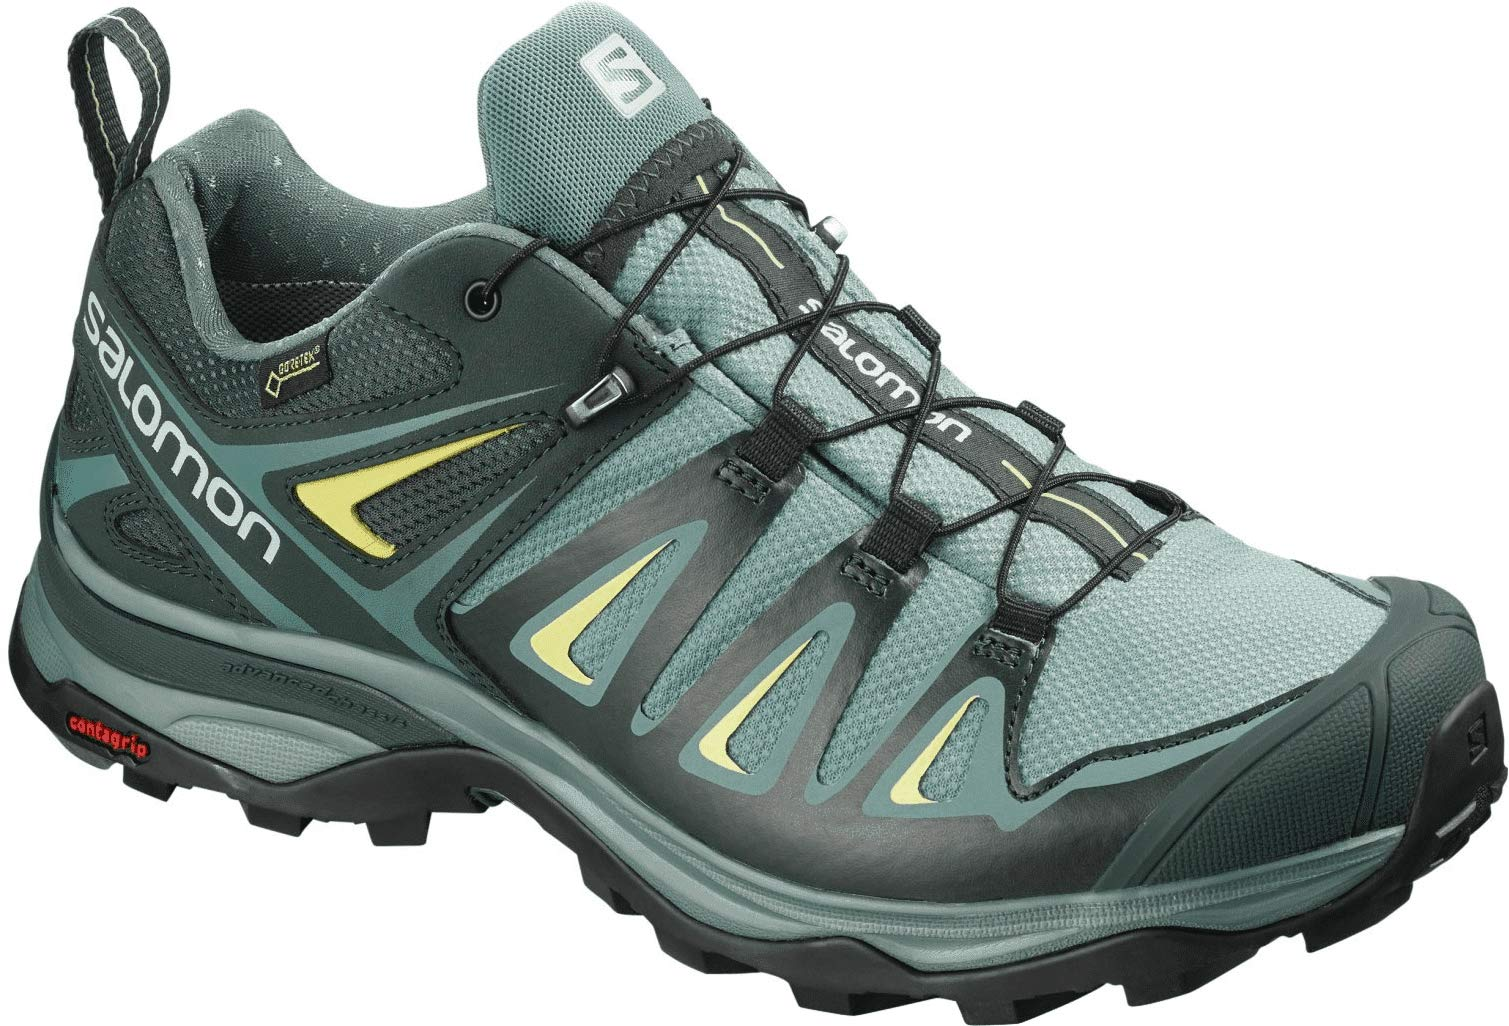 Salomon Women's X Ultra 3 GTX Hiking Shoes, ARTIC/Darkest Spruce/Sunny Lime, 8.5 by SALOMON